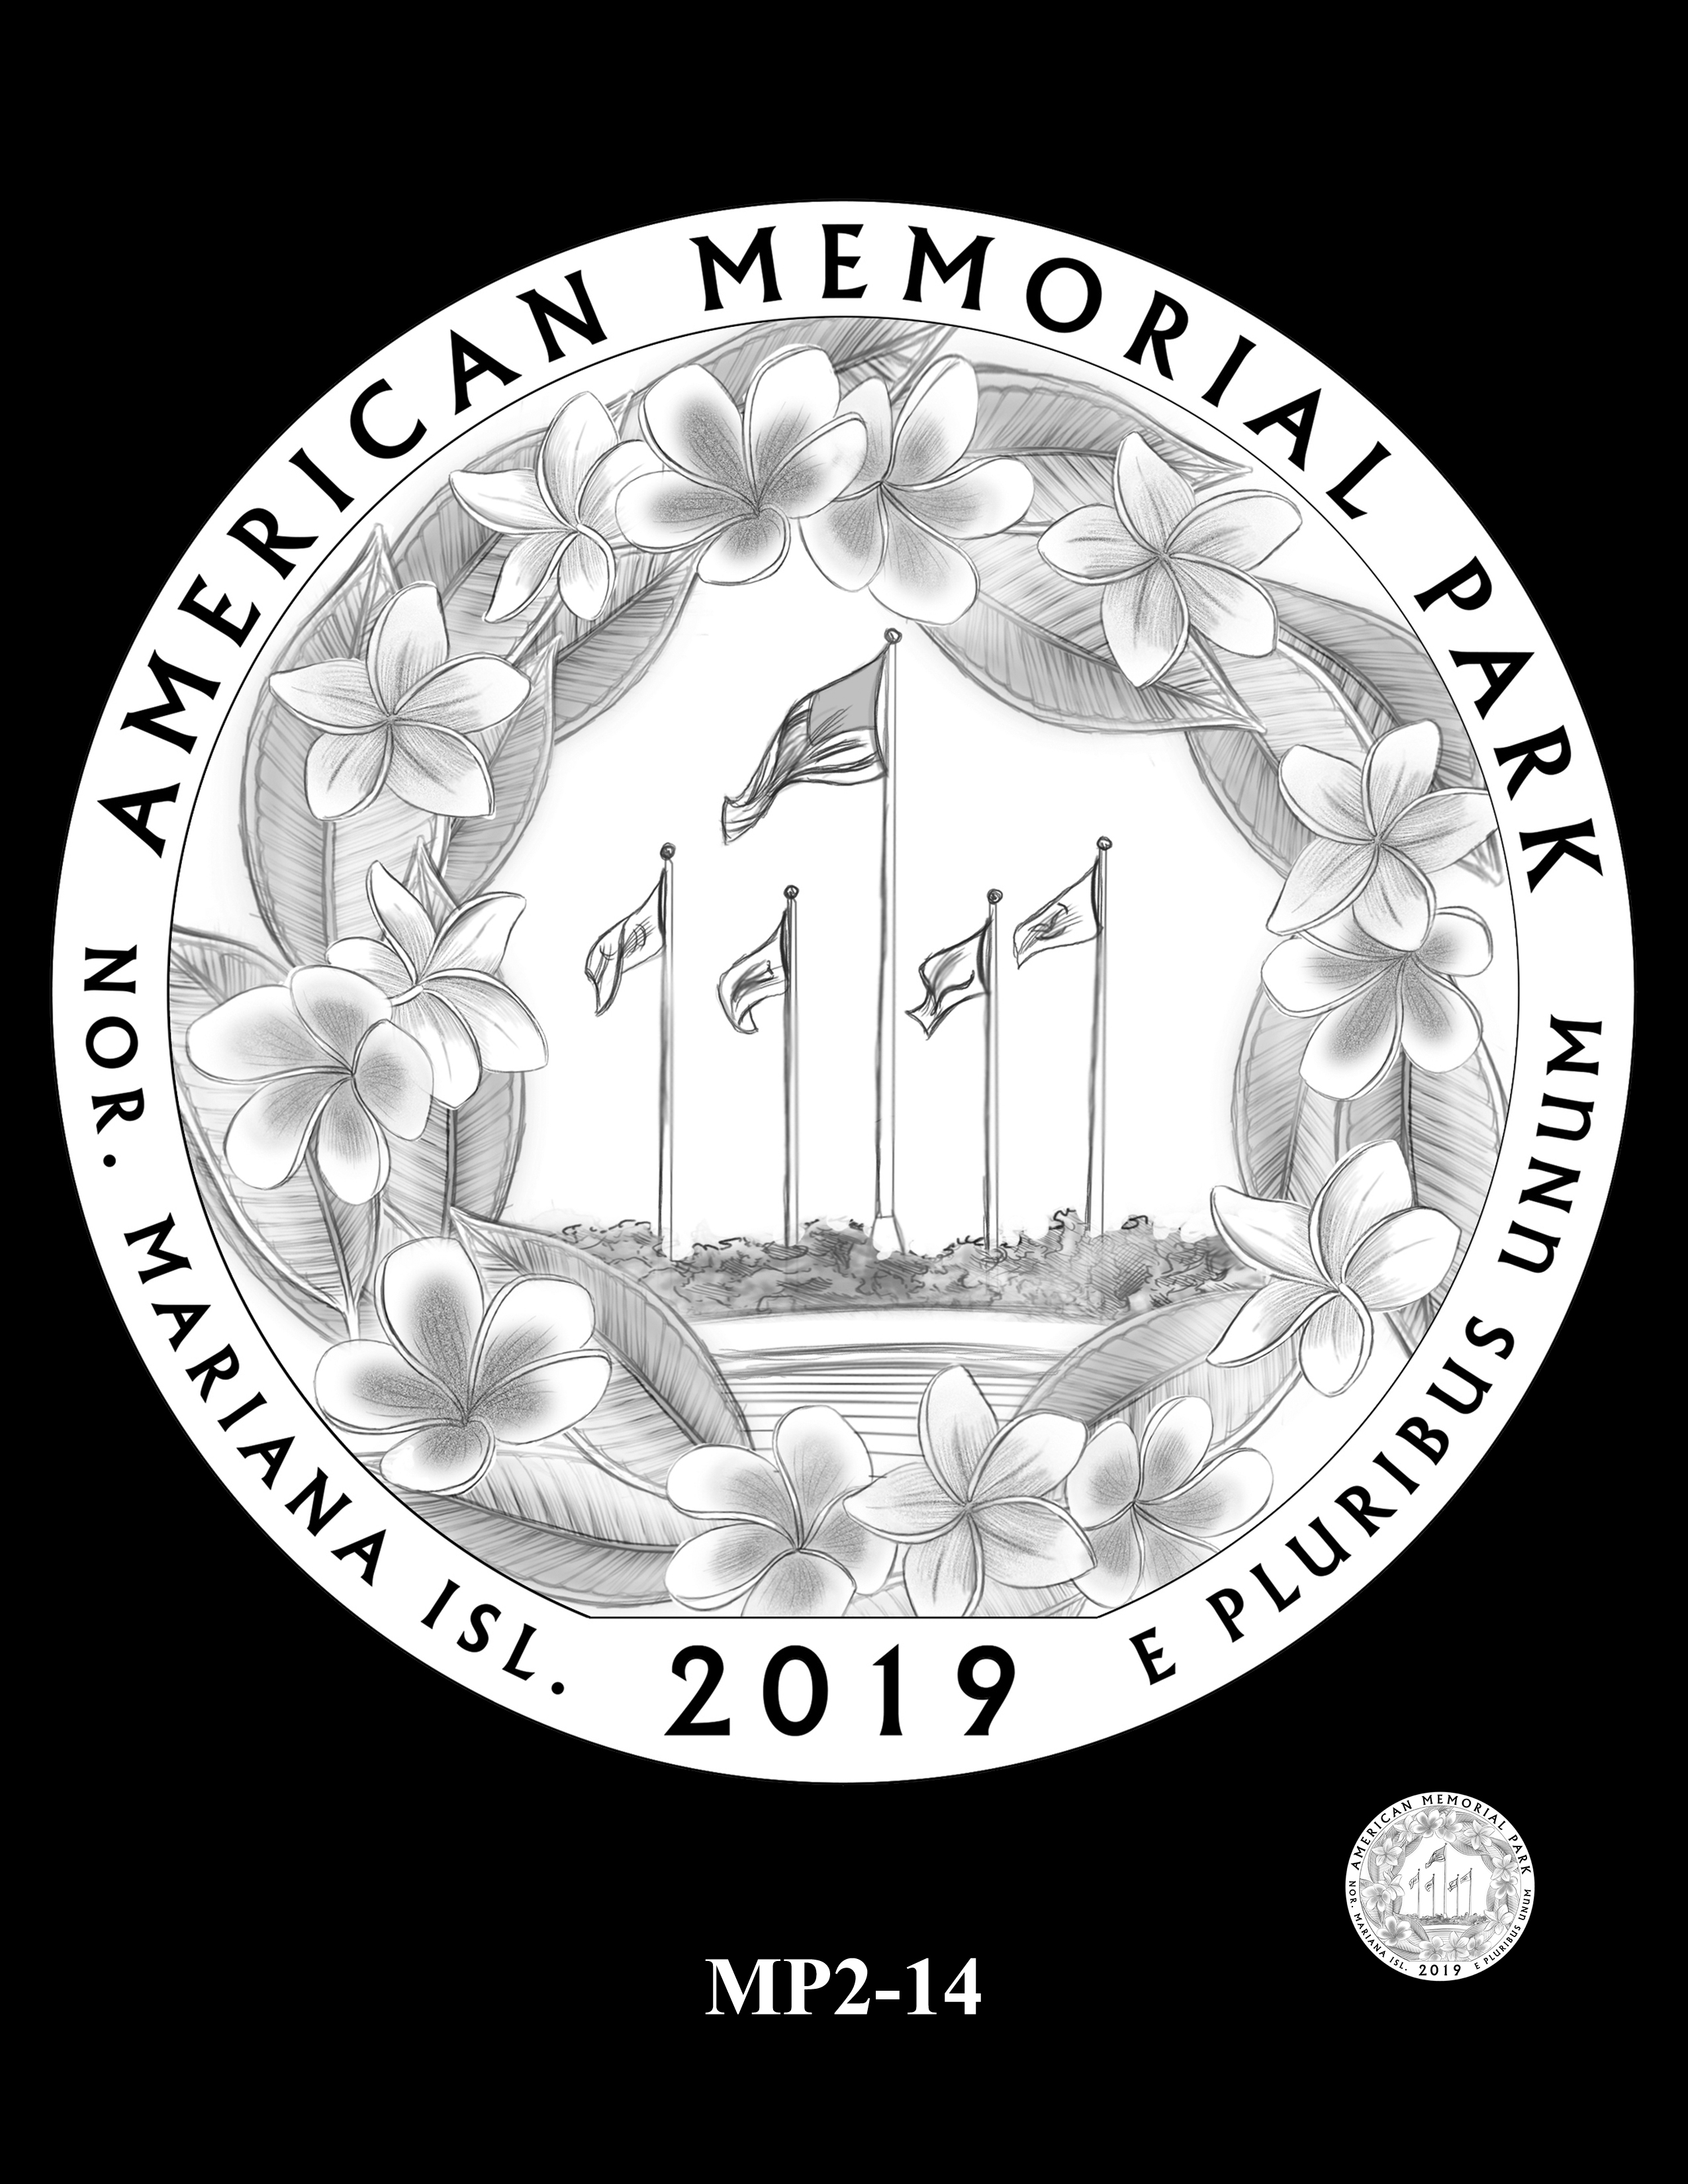 MP2-14 -- 2019 America the Beautiful Quarters® Program